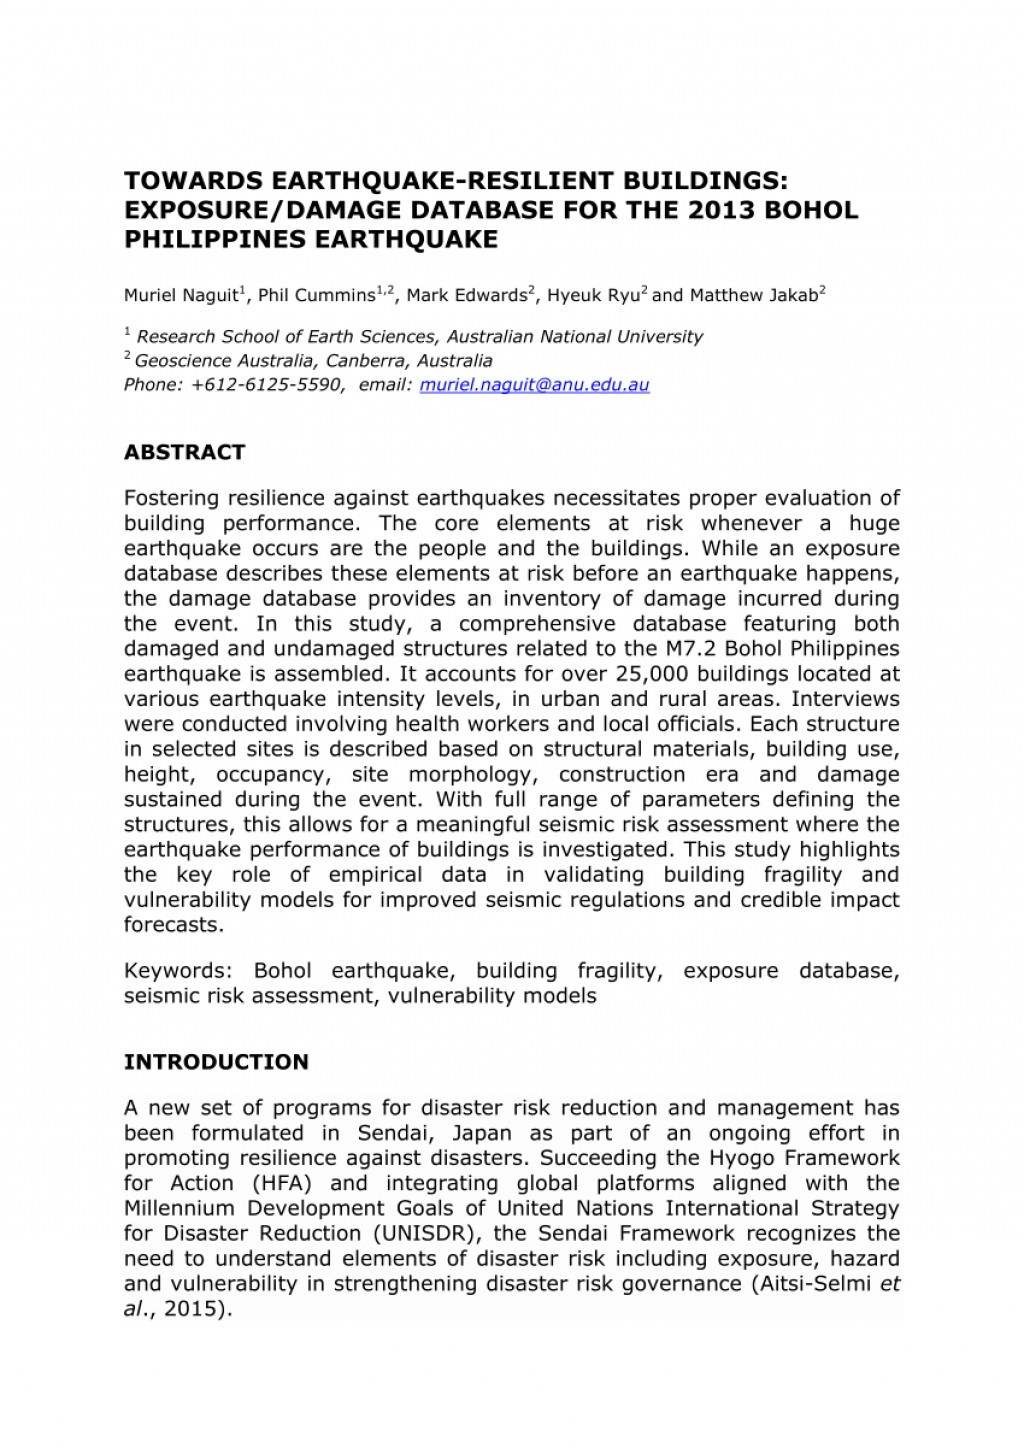 002 Earthquake Research Paper Pdf Philippines Wondrous Large